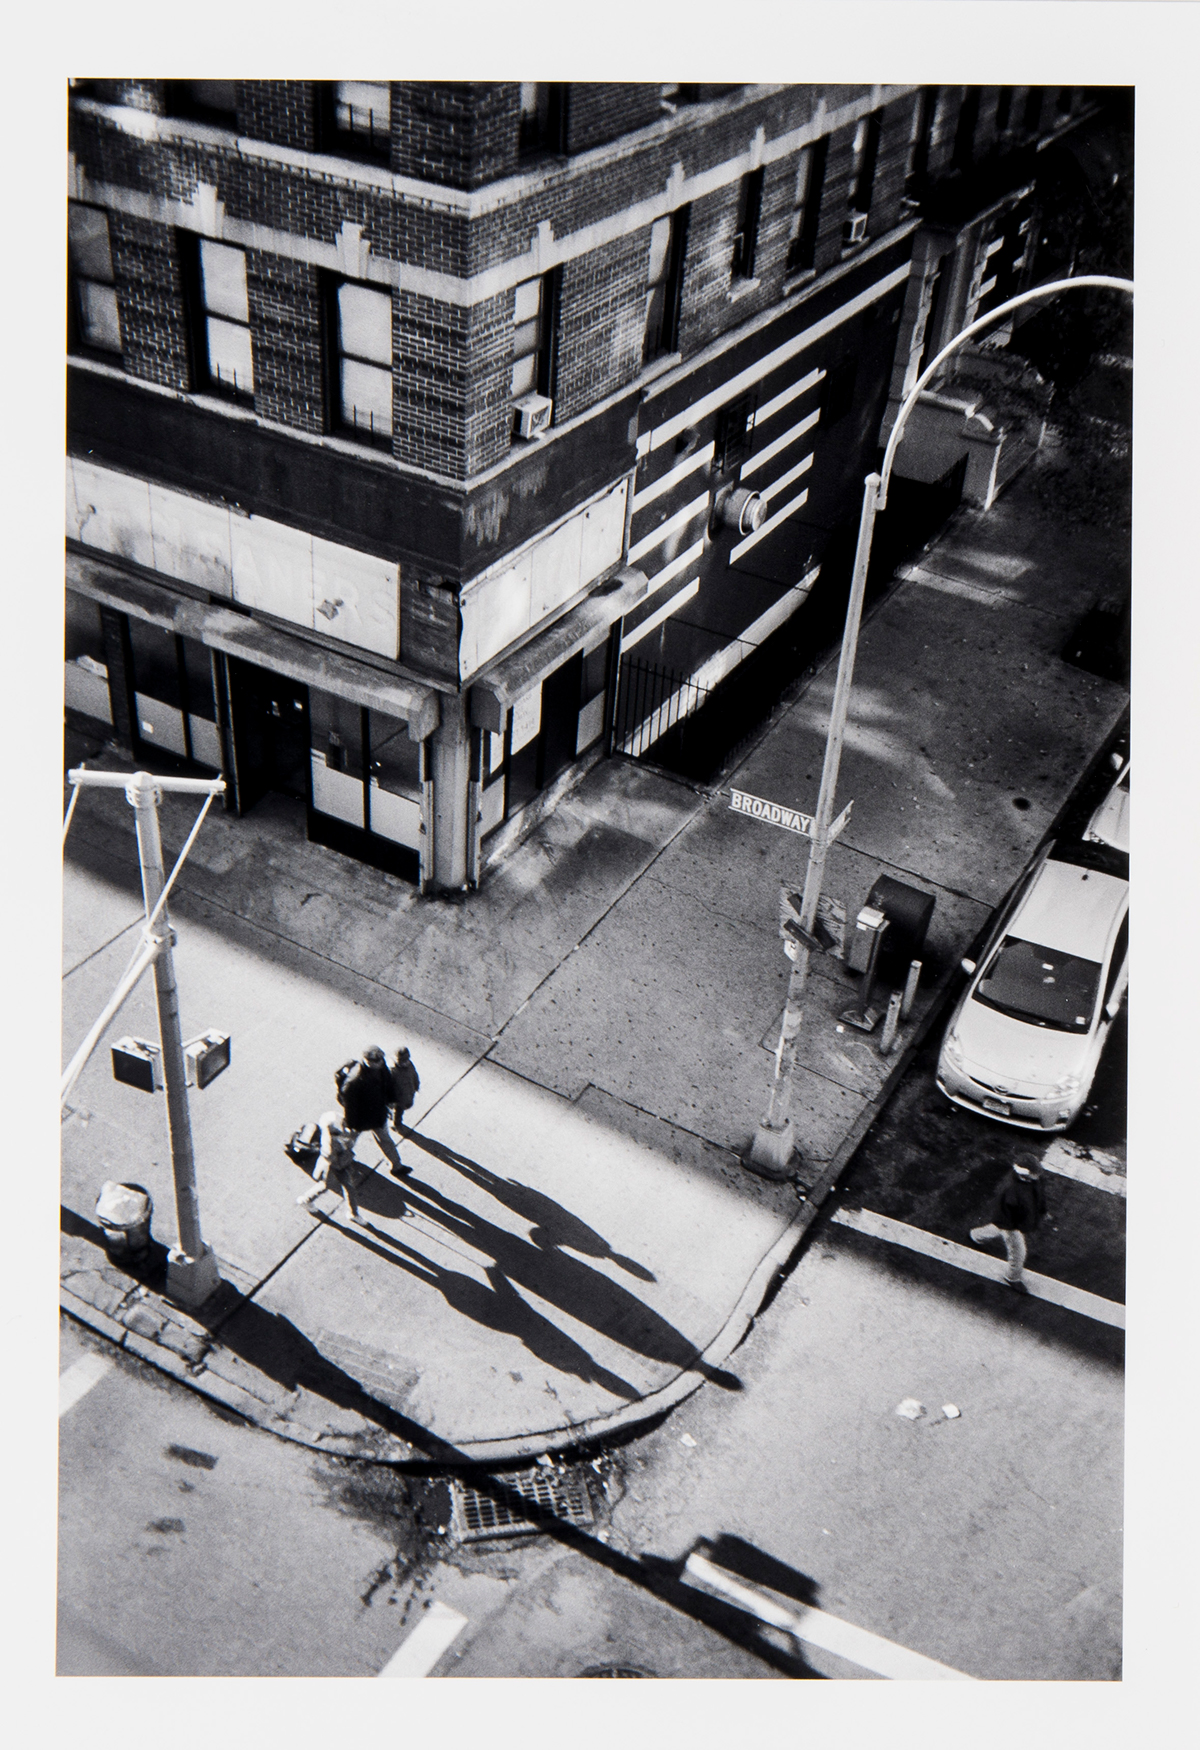 A photograph of passersby on the street from a high vantage